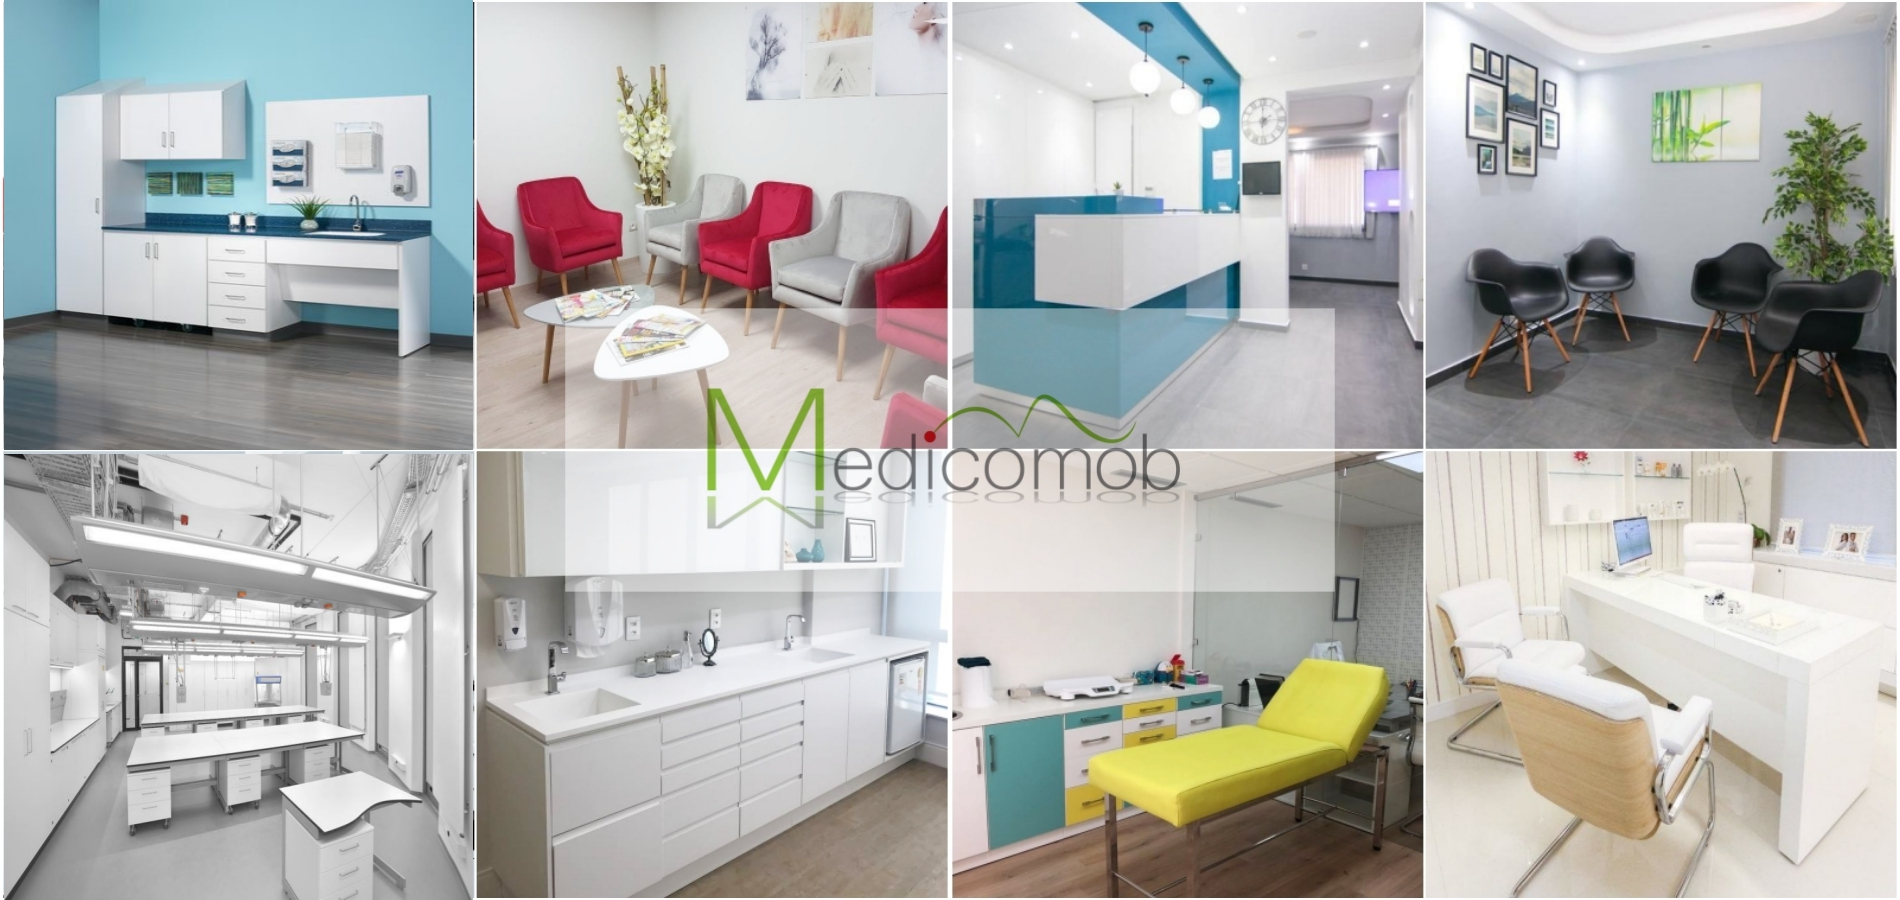 Chaises Salle D Attente Cabinet Medical agencement medical | medicomob | maroc